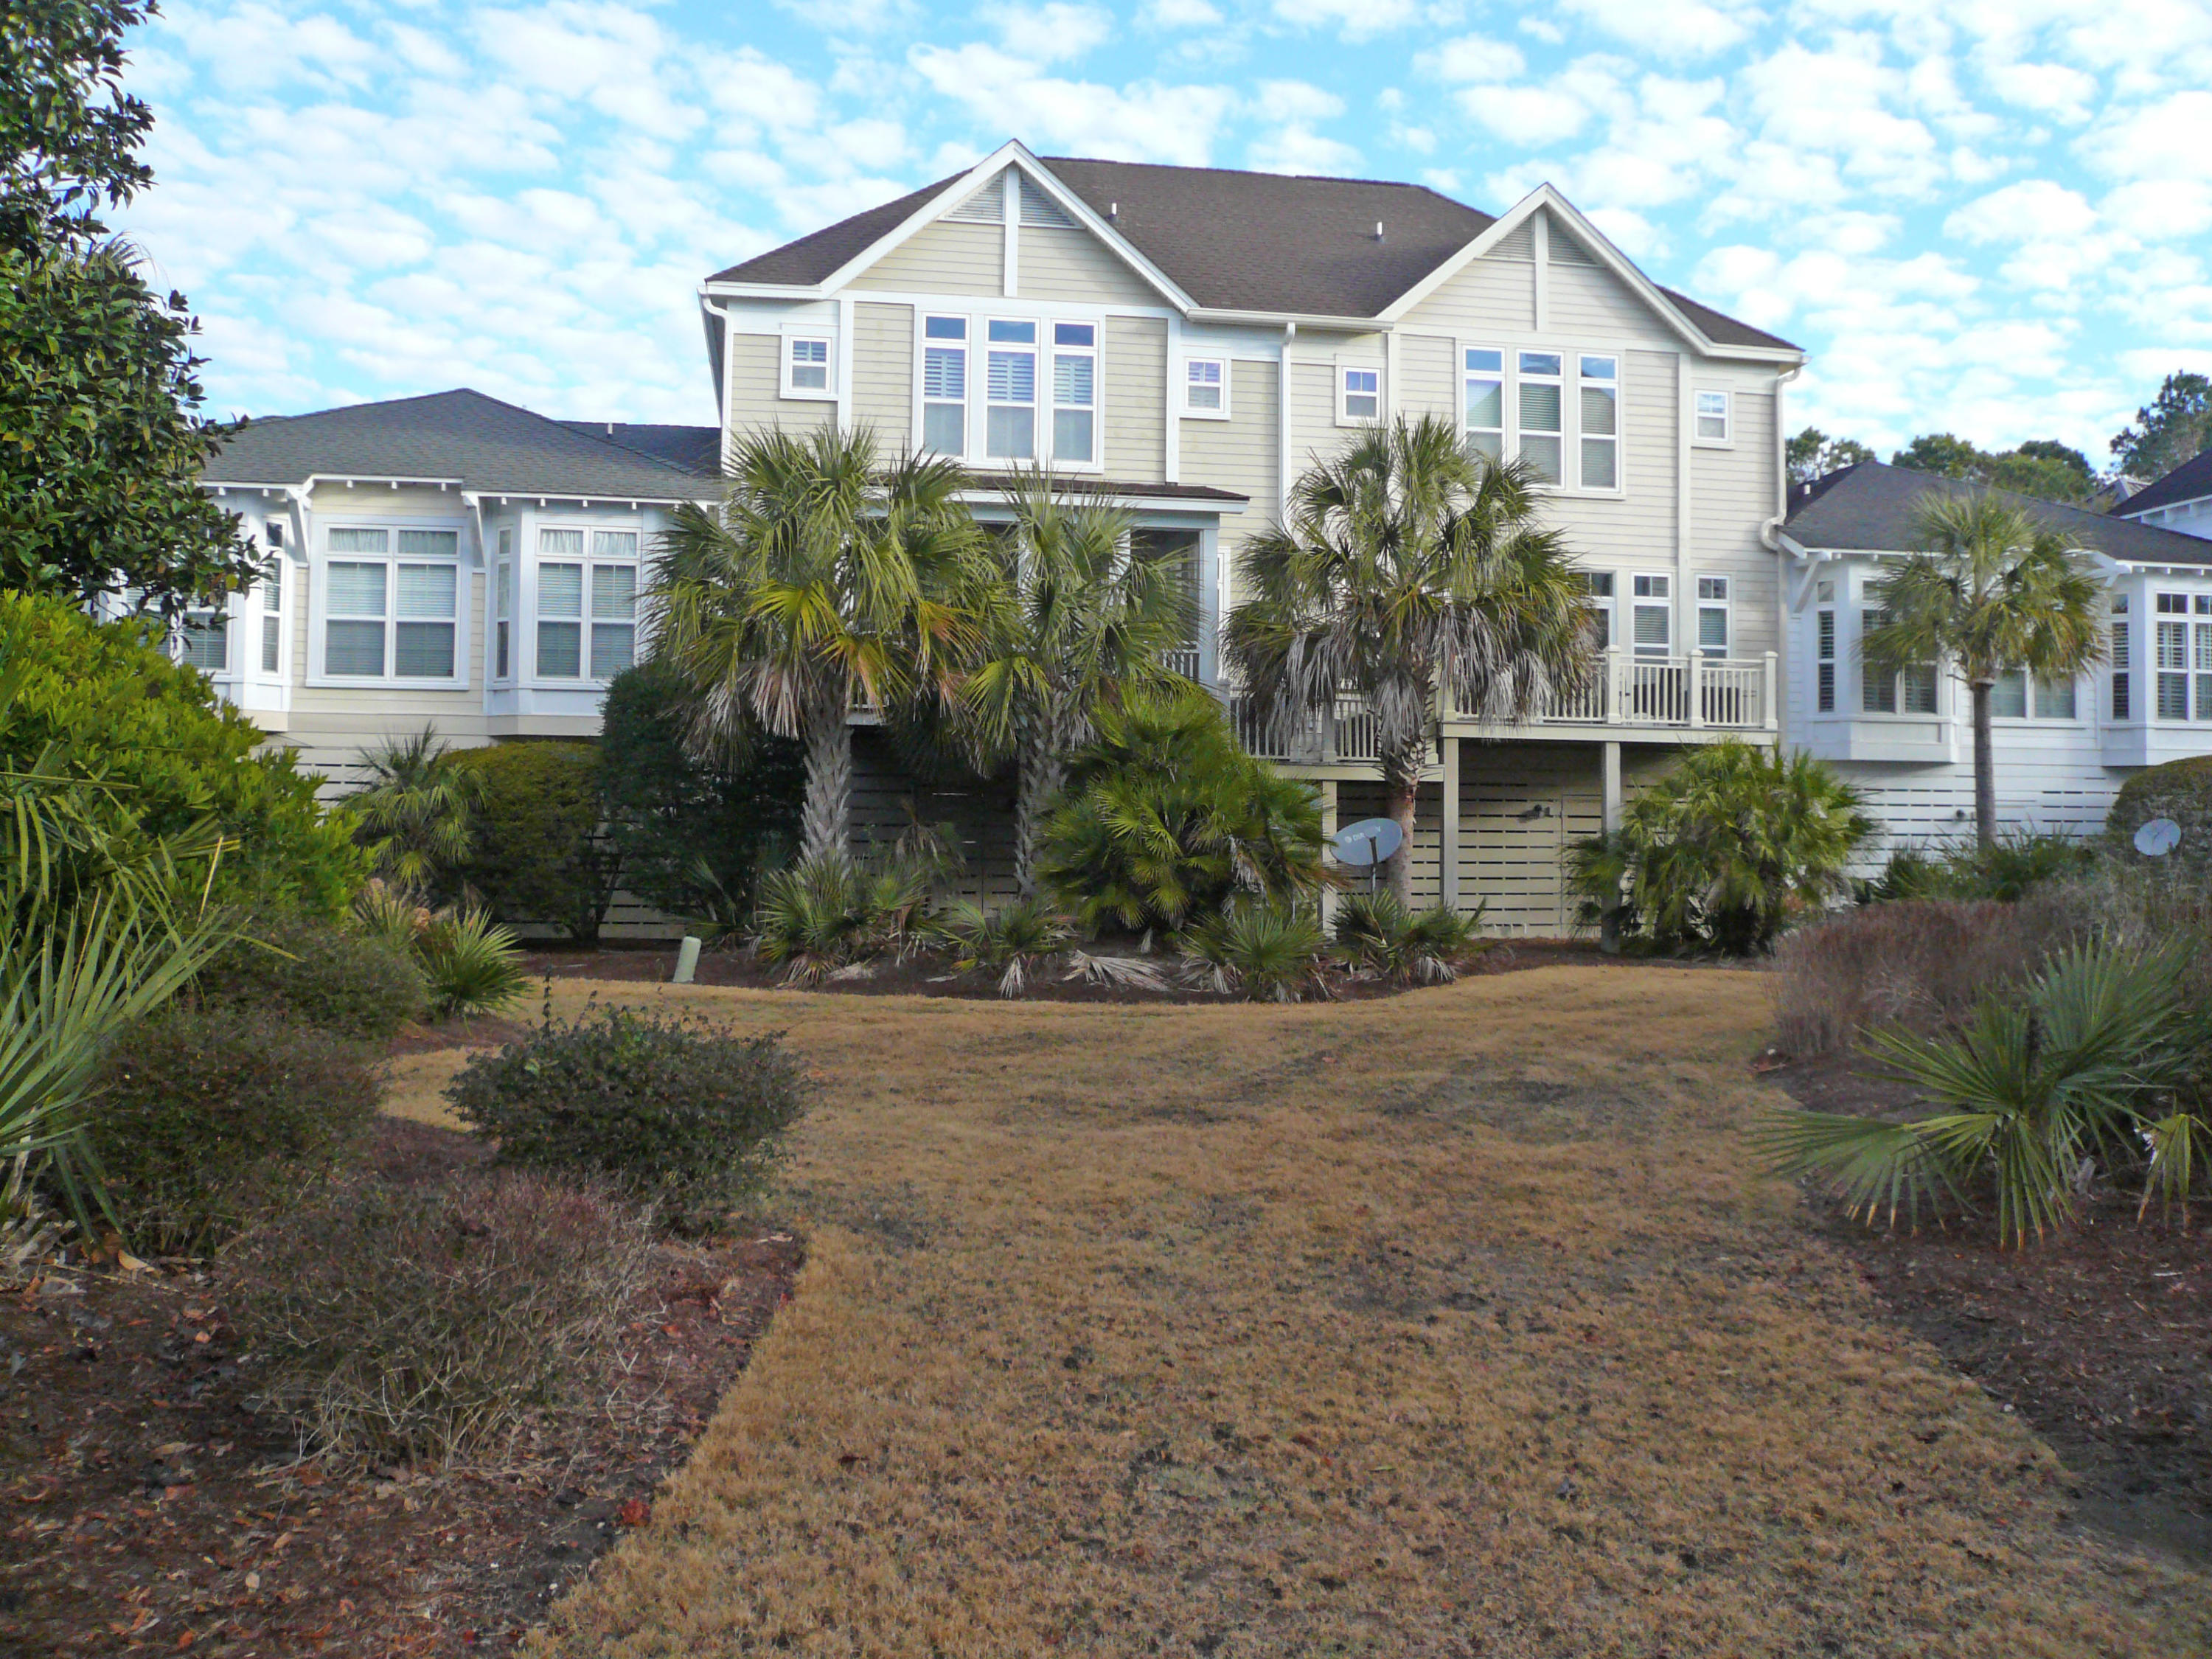 Home for sale 1904 English Ivy Court, Seaside Farms, Mt. Pleasant, SC